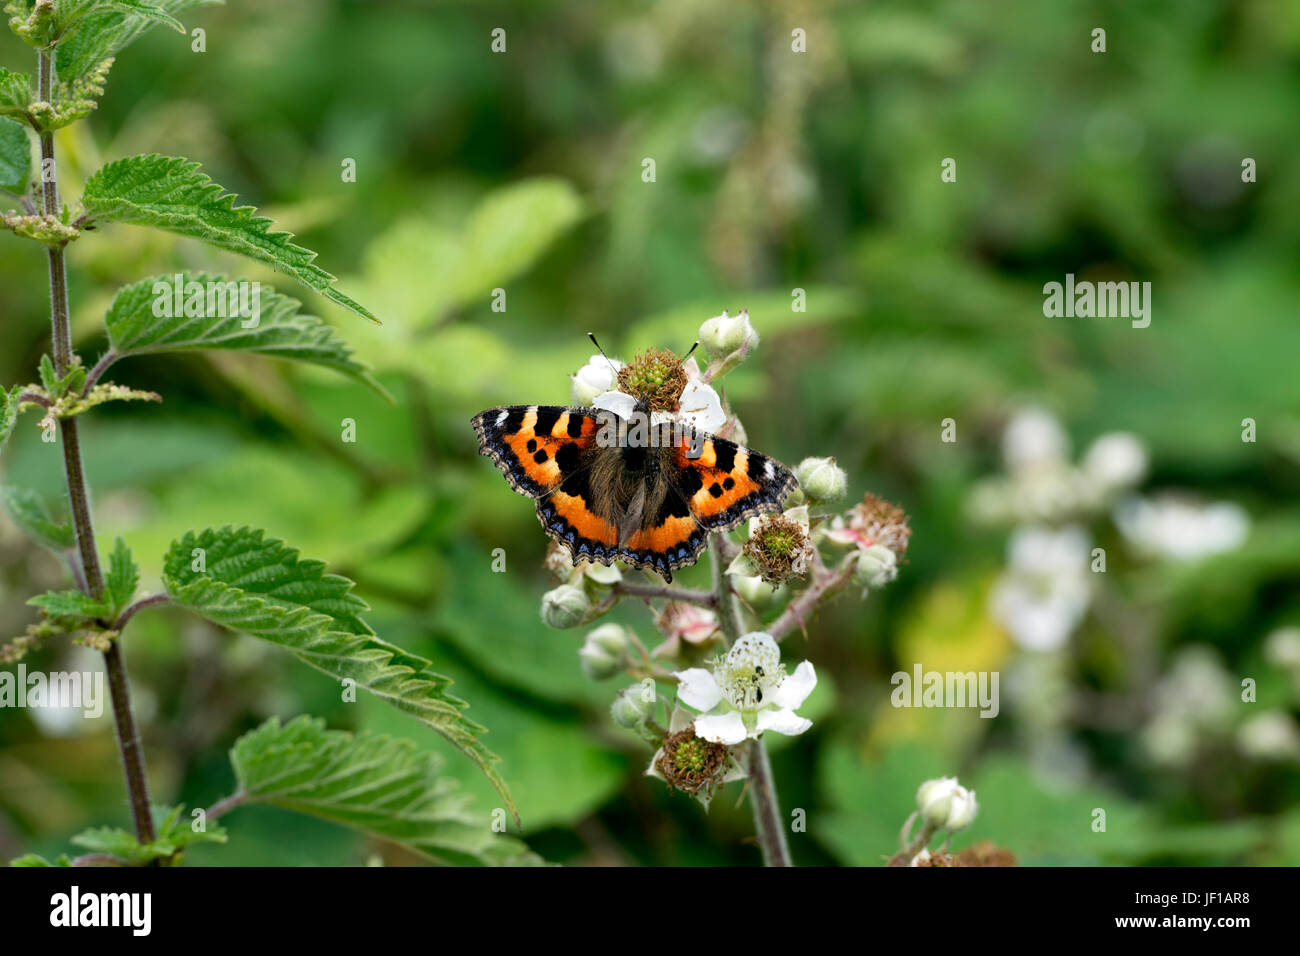 Small Tortoiseshell butterfly (Aglais urticae) on Bramble flower, Warwickshire, UK - Stock Image